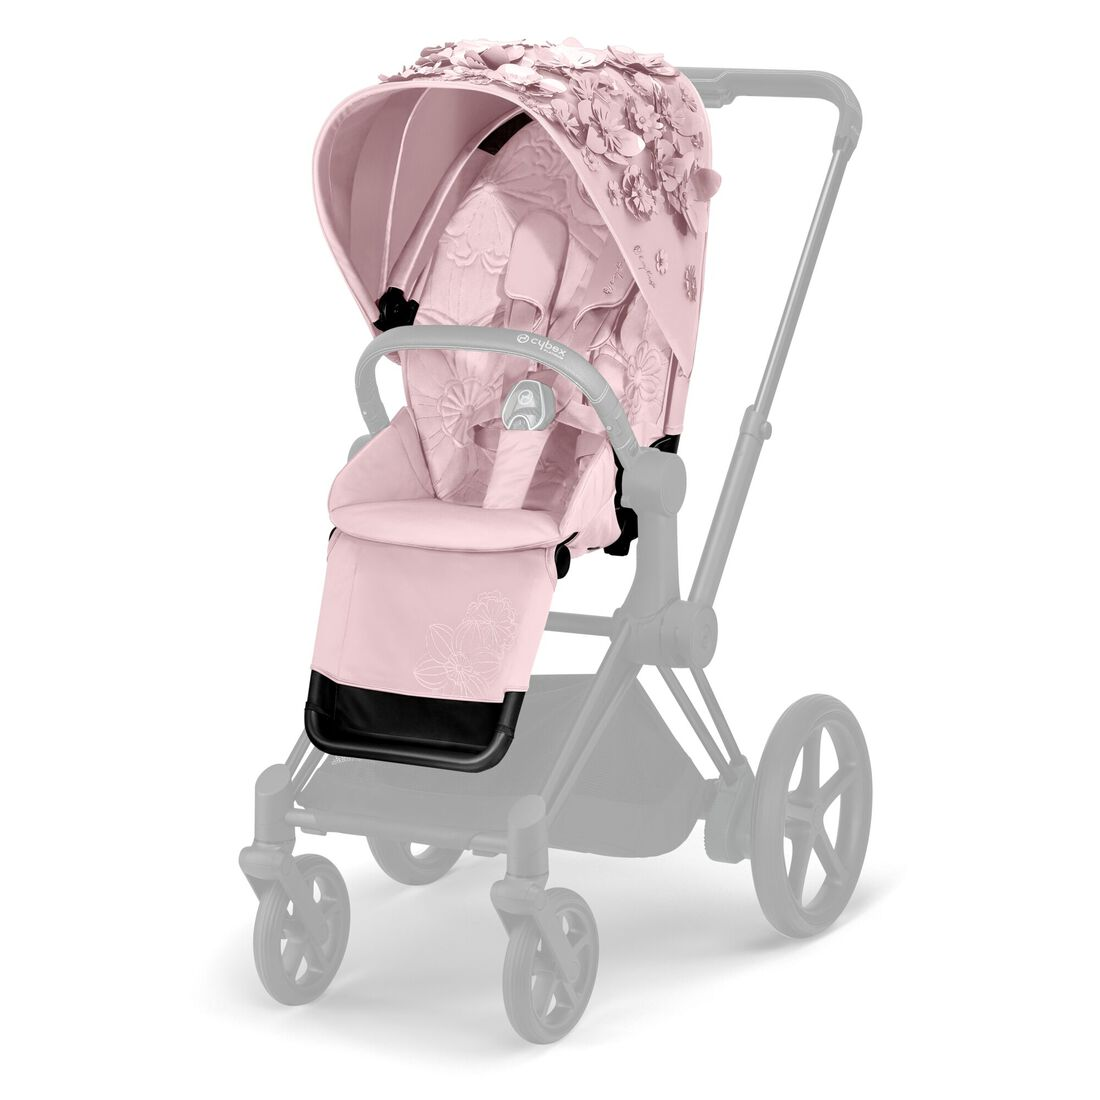 CYBEX Priam Seat Pack - Pale Blush in Pale Blush large image number 1